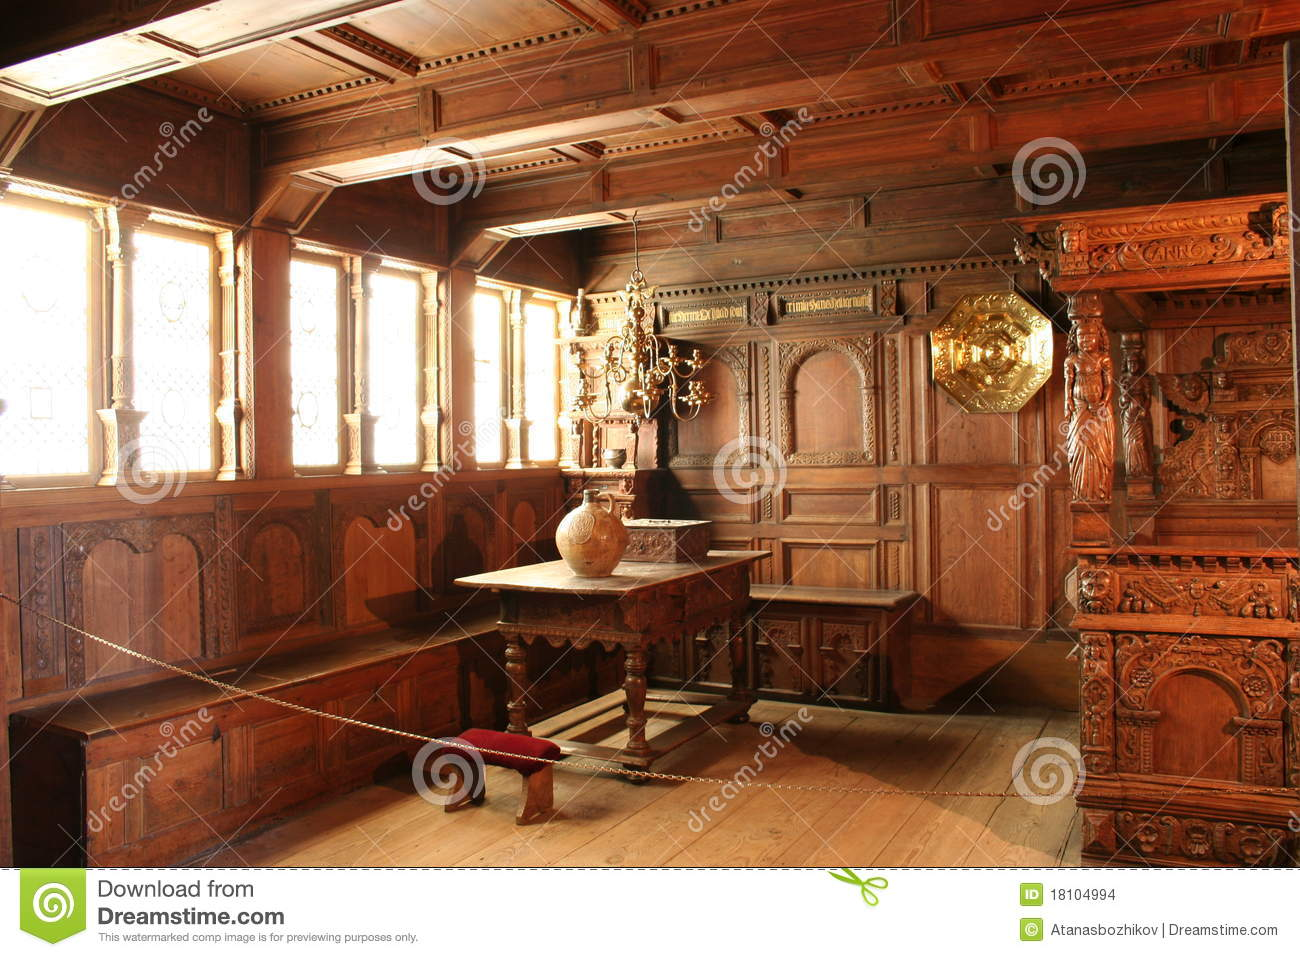 How to Start a Antique Furniture Restoration Business